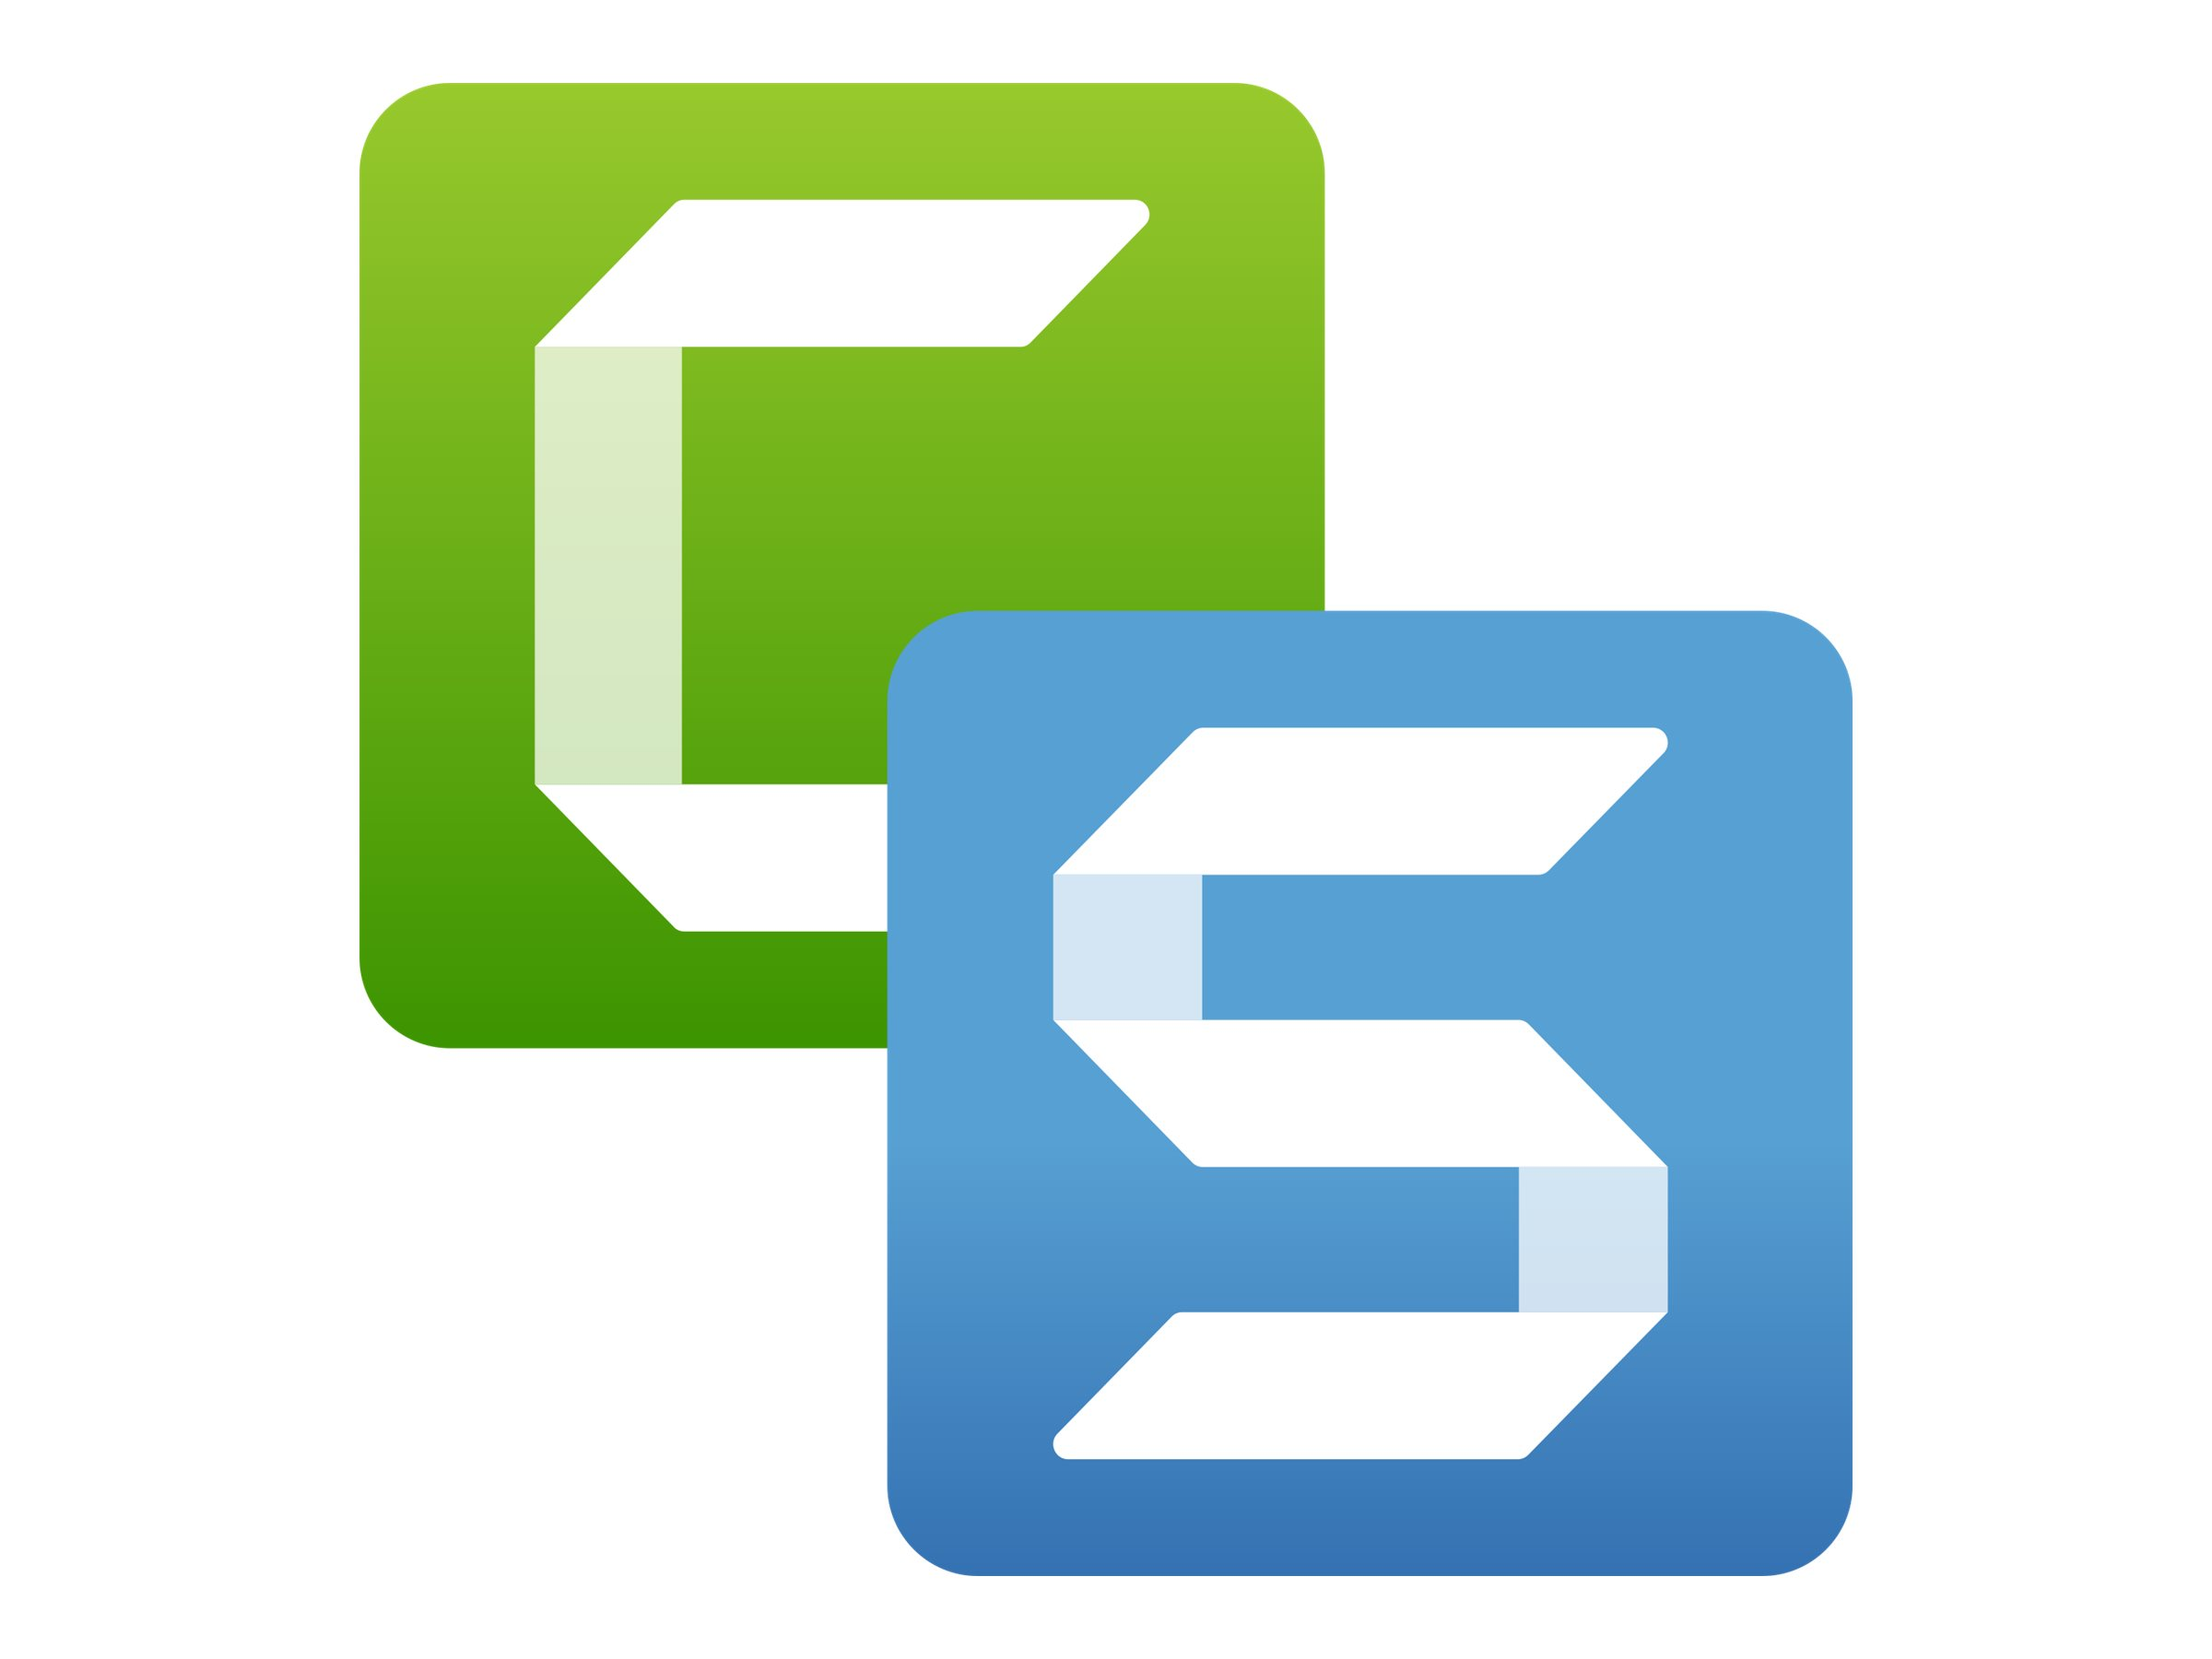 Camtasia/Snagit Bundle 2020 - license - 1 user